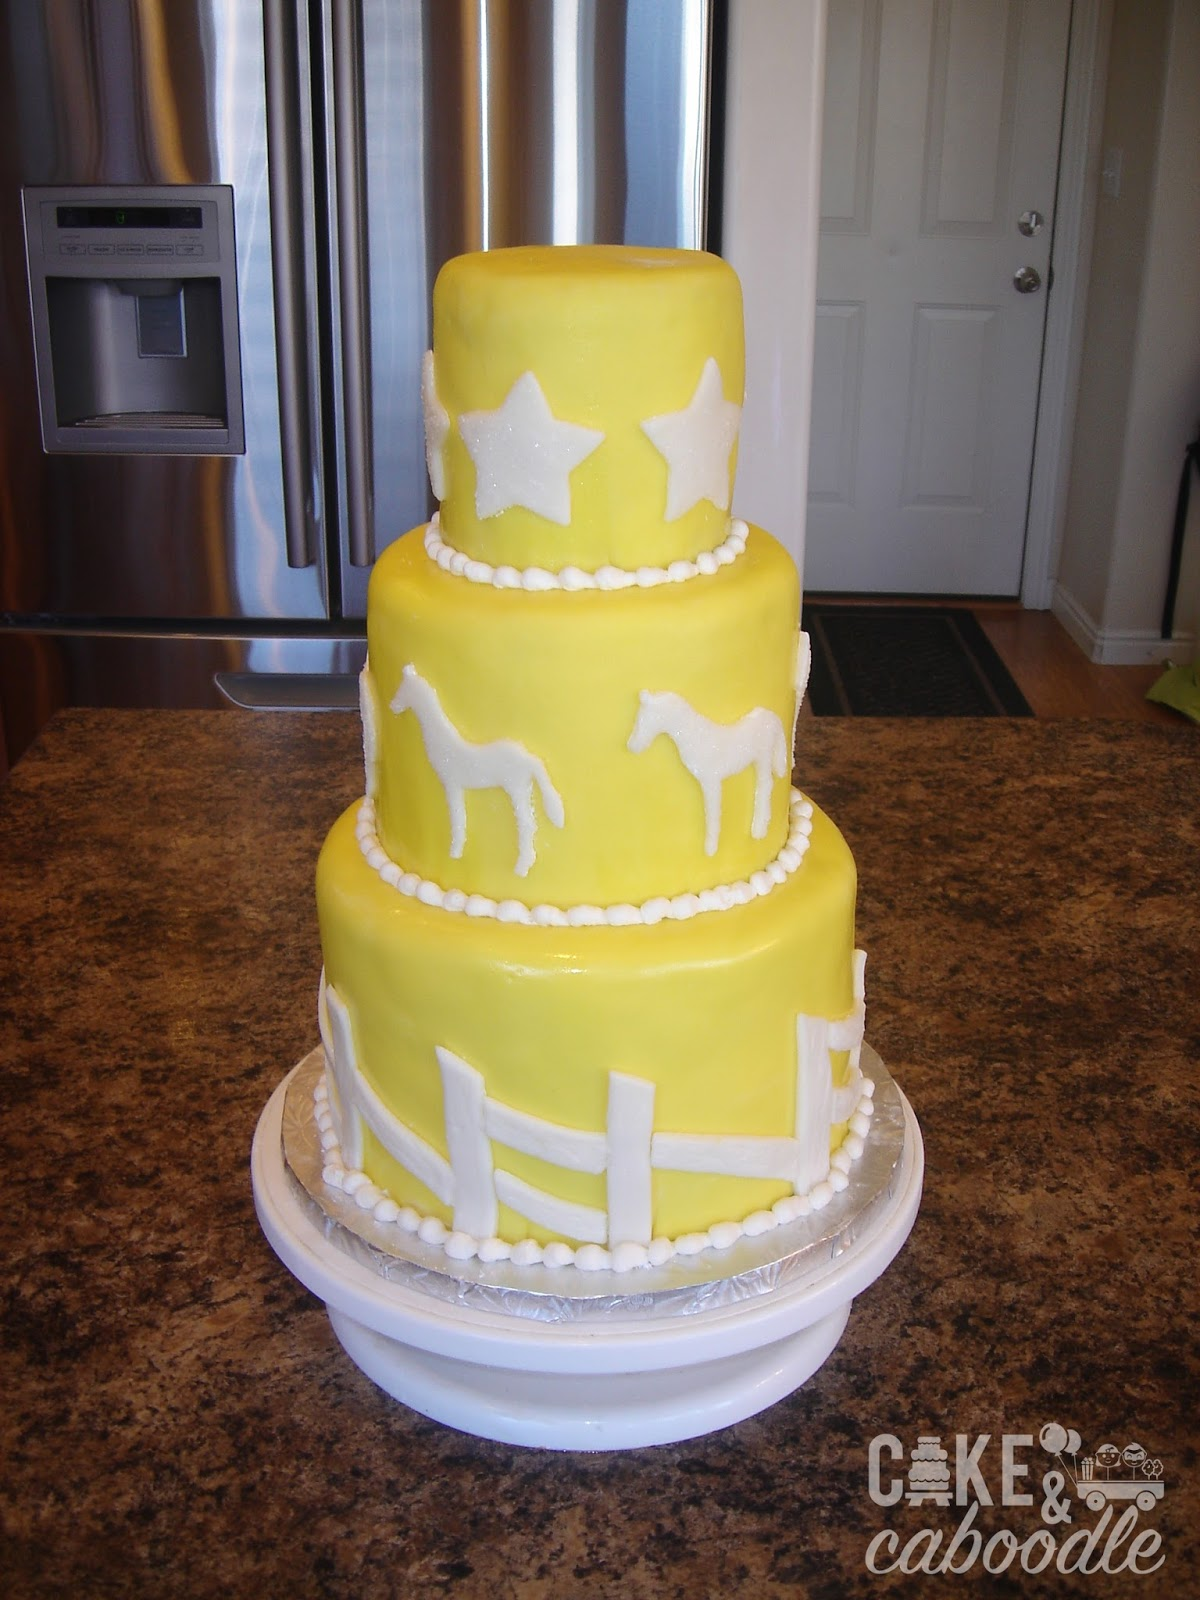 March 2016 Cake And Caboodle